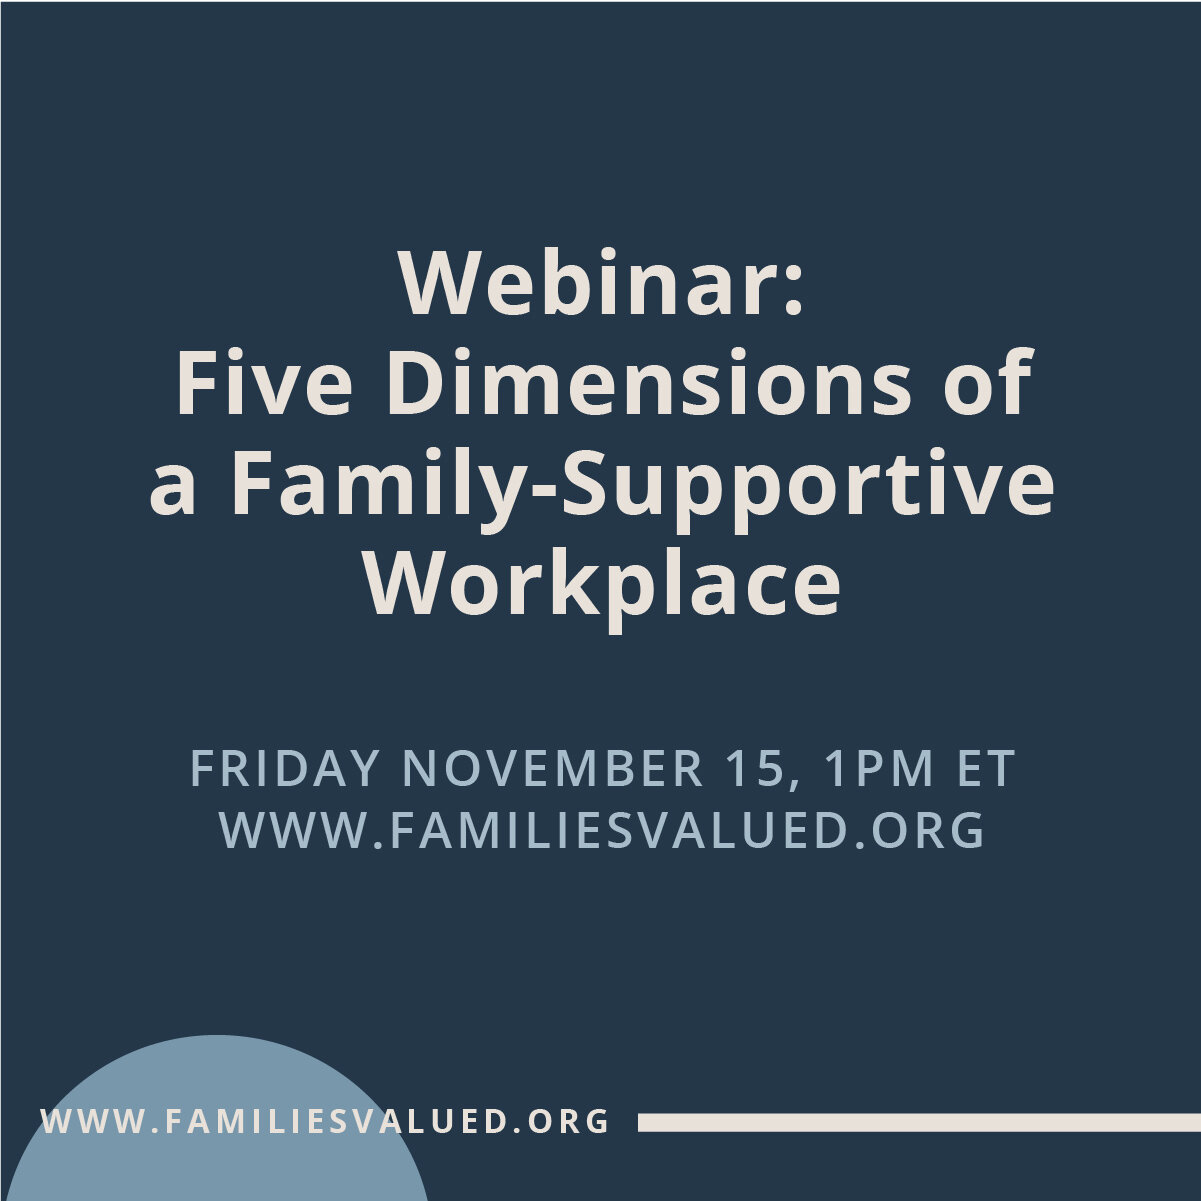 Register for Upcoming Webinar - This webinar is about the impact of the workplace on employees and their families. It will share some of our latest thought-work on building a family-supportive workplace. Registrants will also receive access to our new, practical resource book, which includes sample workplace policies.Register today.